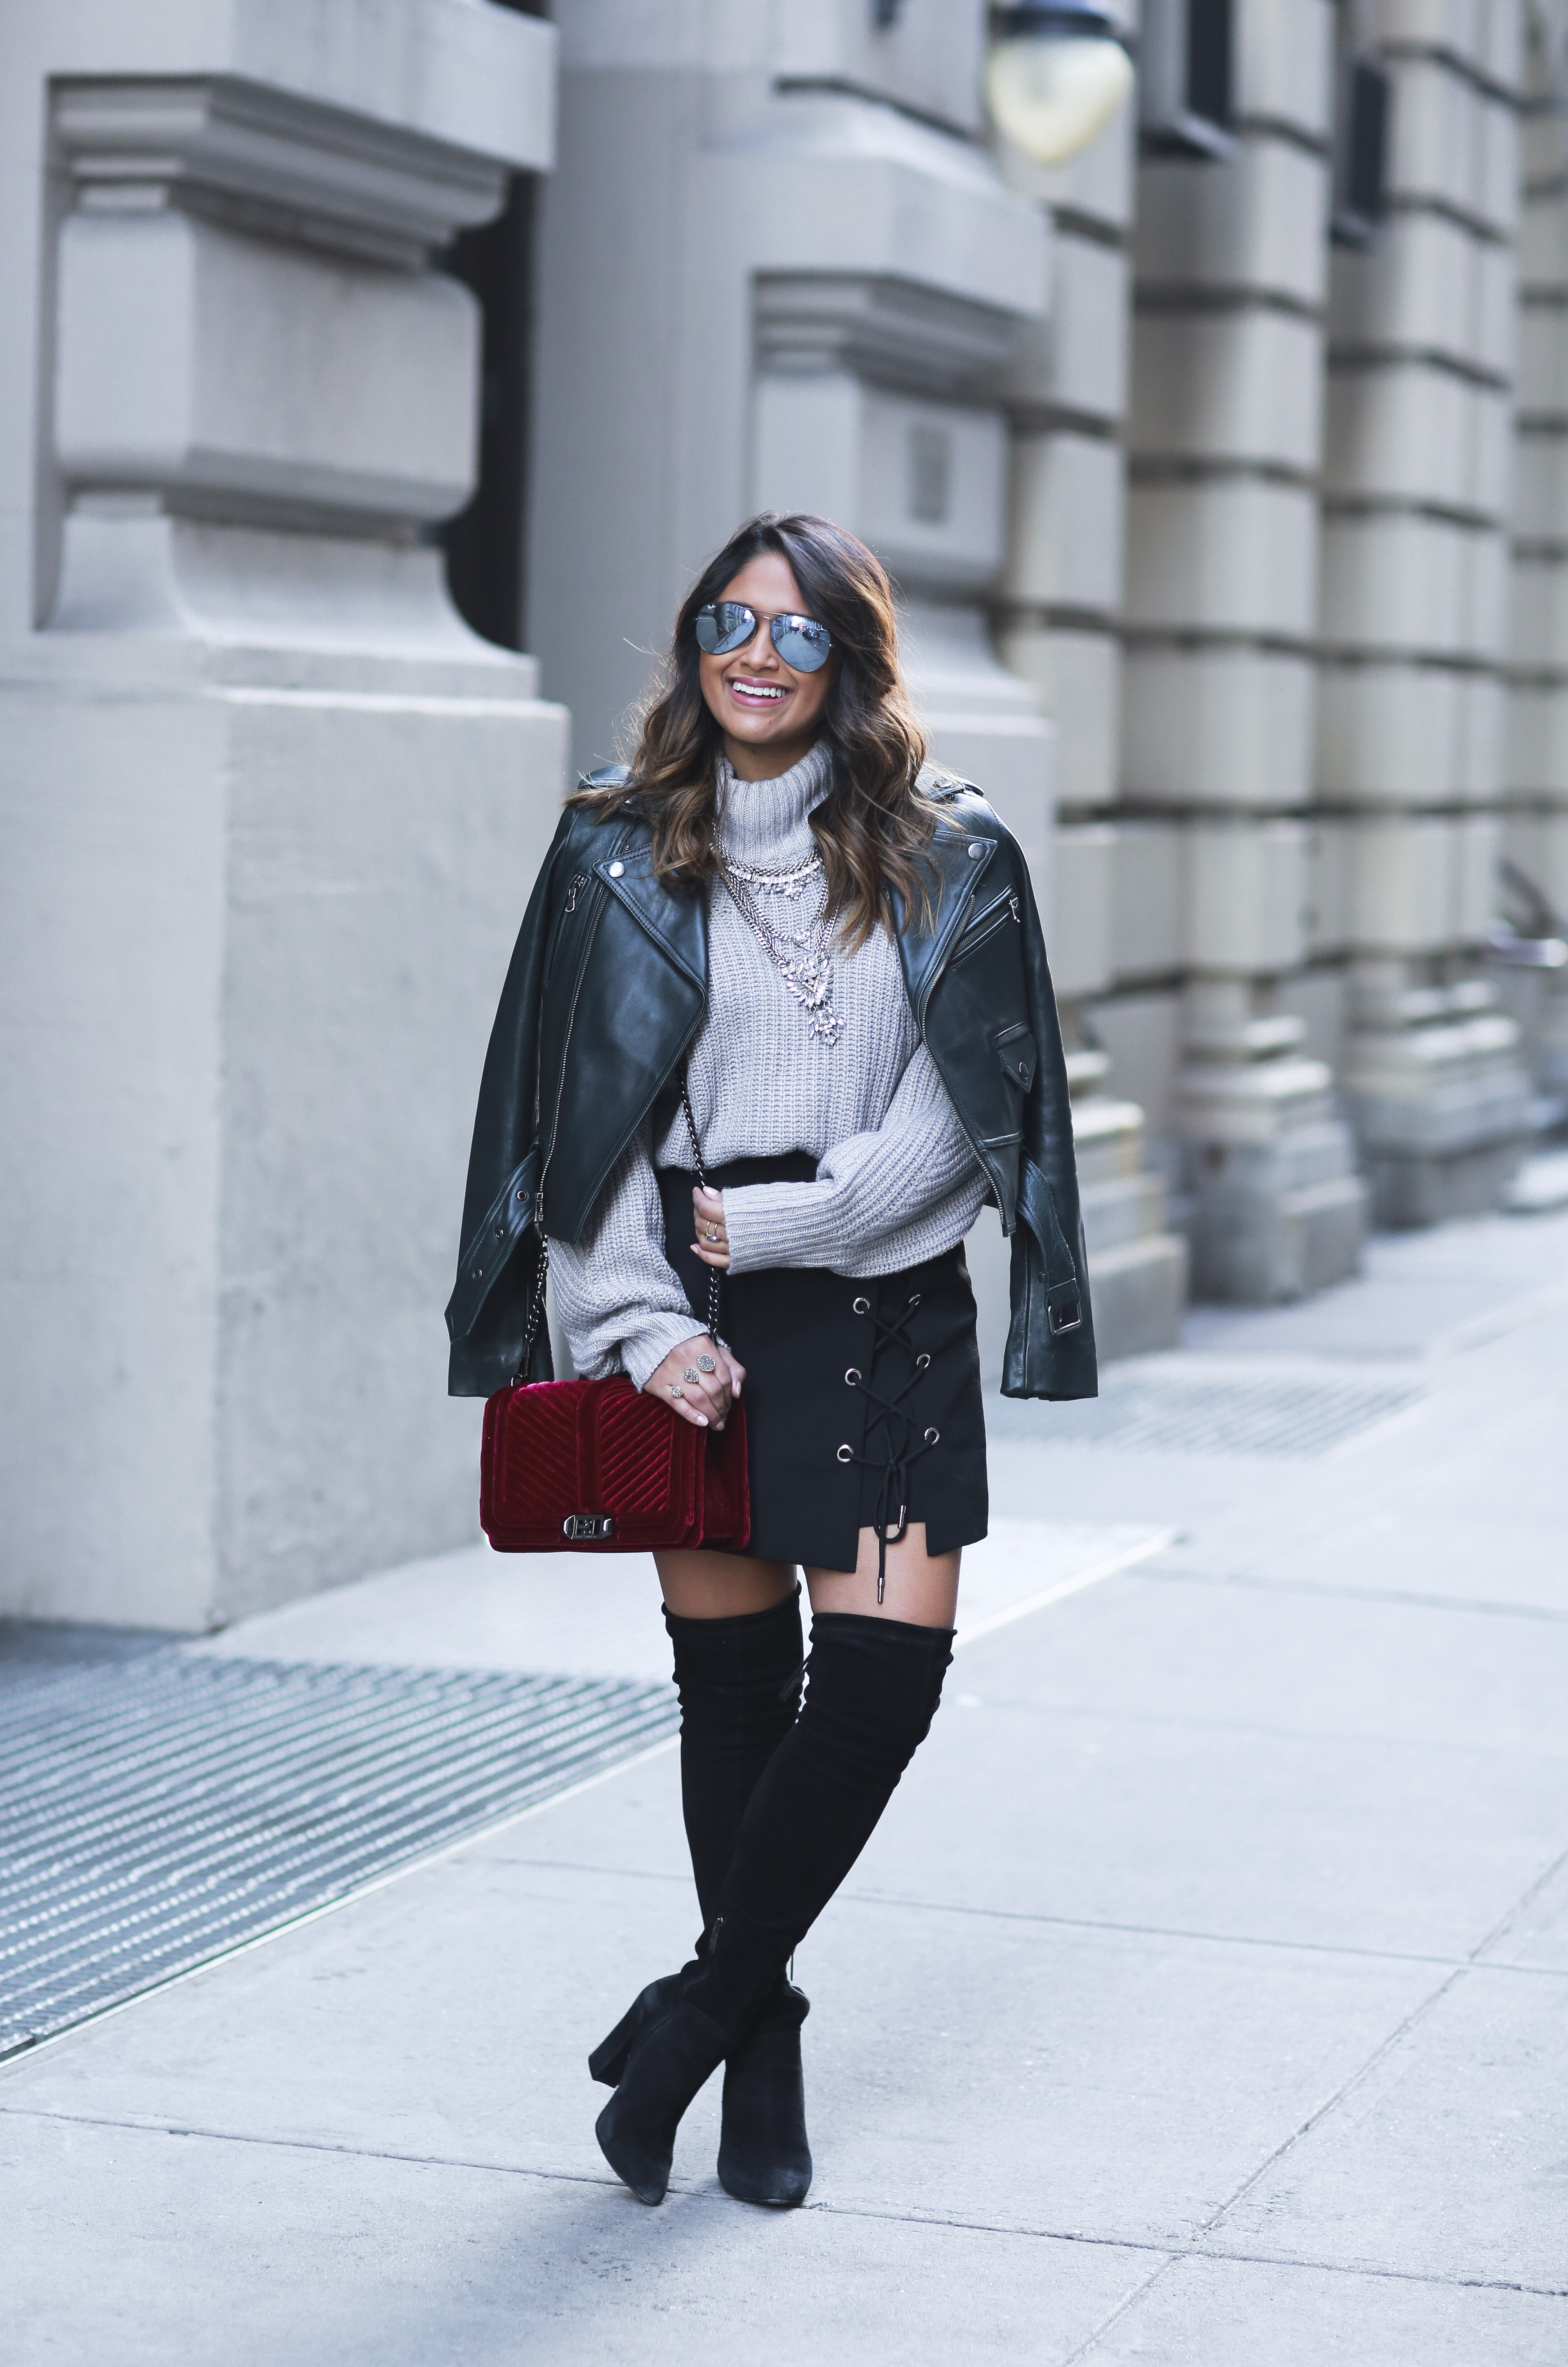 Lace Up Skirt Over The Knee Boots 183 Haute Off The Rack